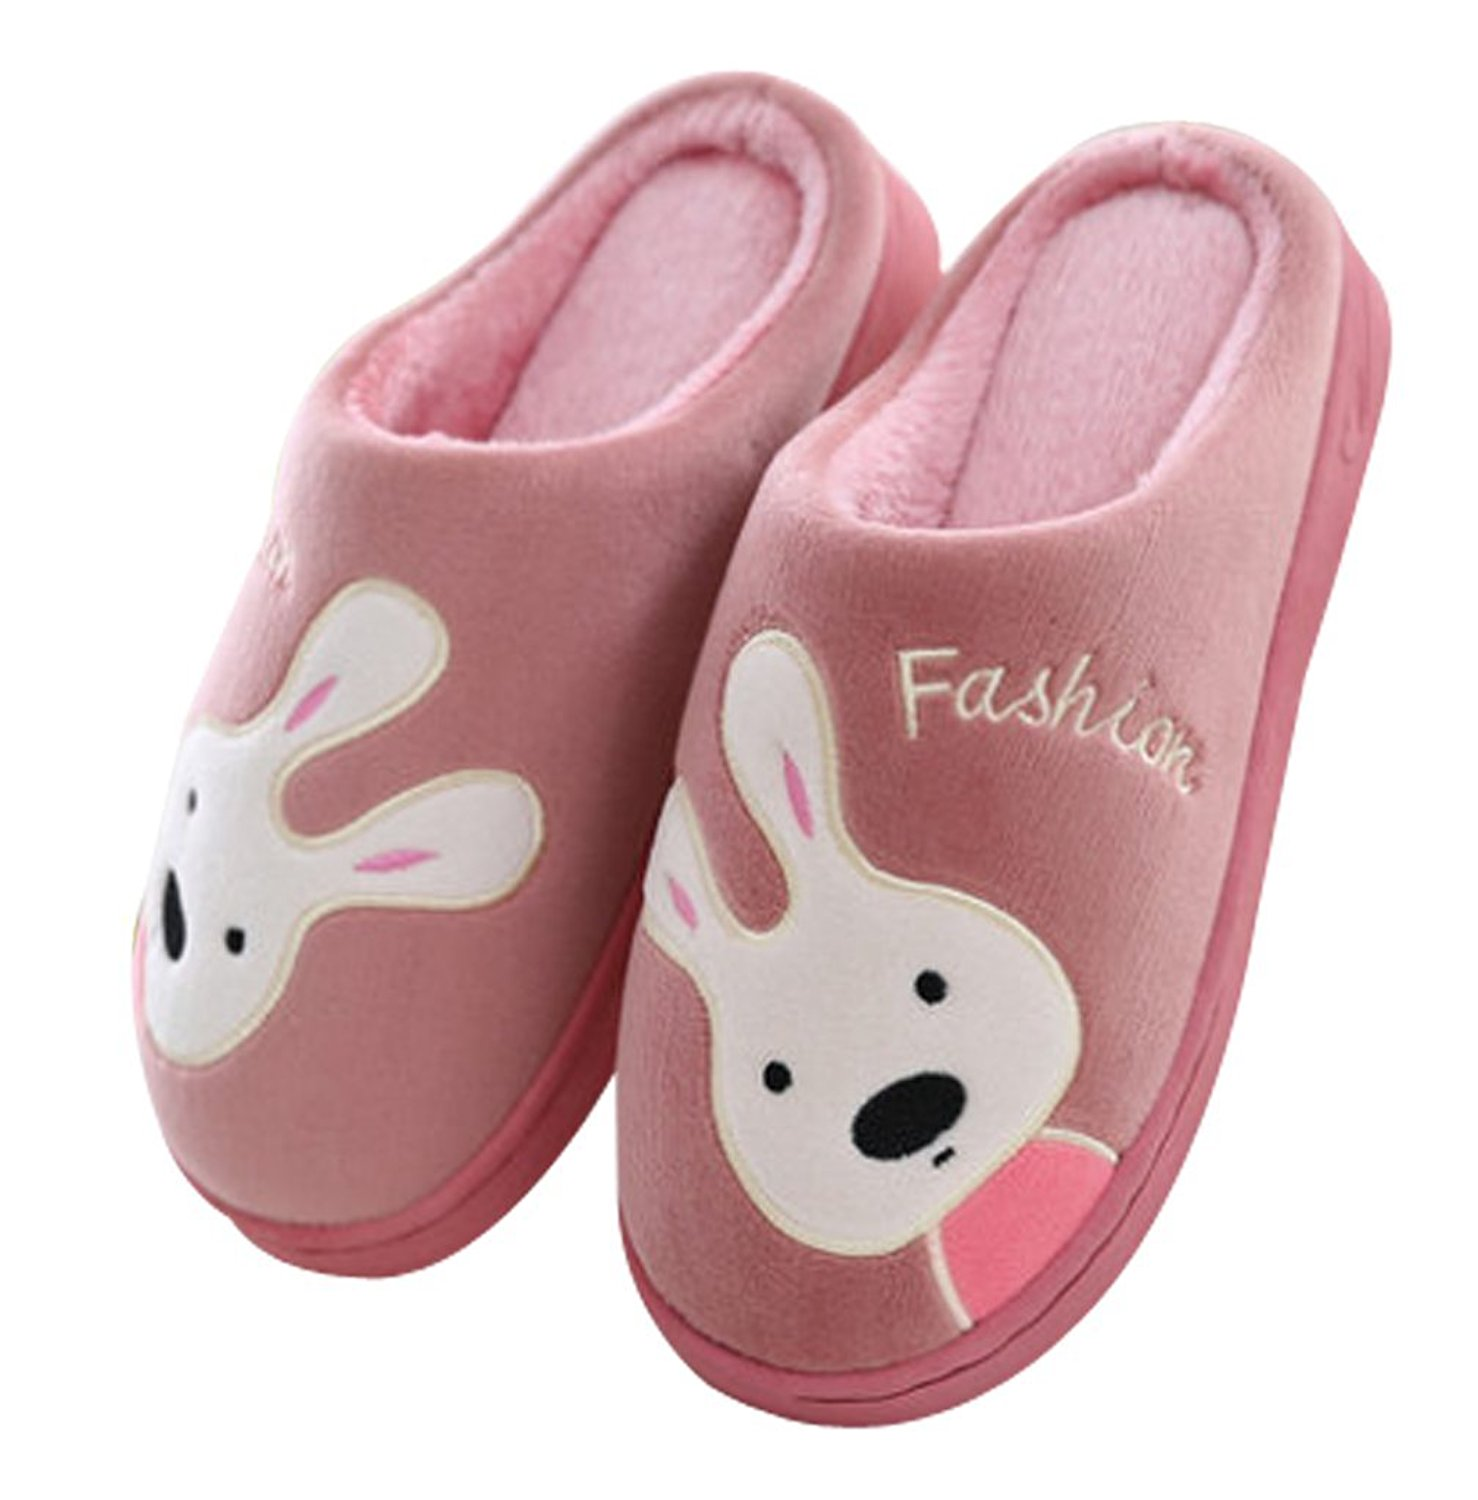 Maybest Womens Indoor Warm Slippers Ladies Girls Cute Cartoon Winter Soft Cozy Non-Slip Plush Mules Home Bedroom Slip-on Shoes